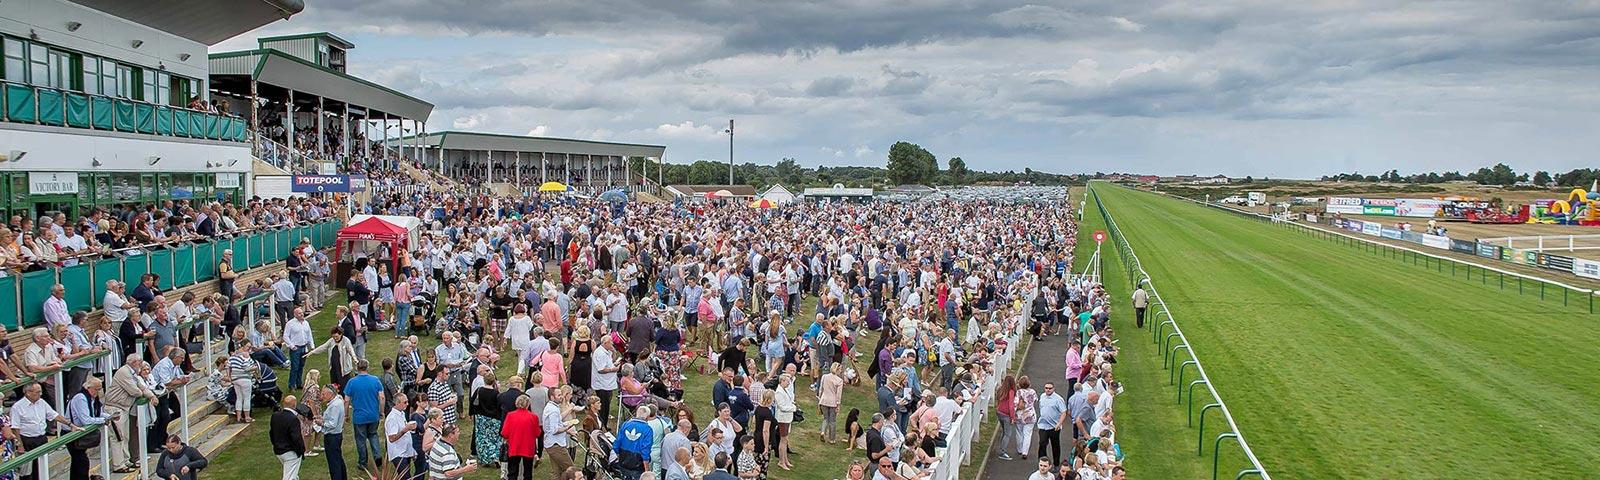 a large crowd of people gather at a racecourse